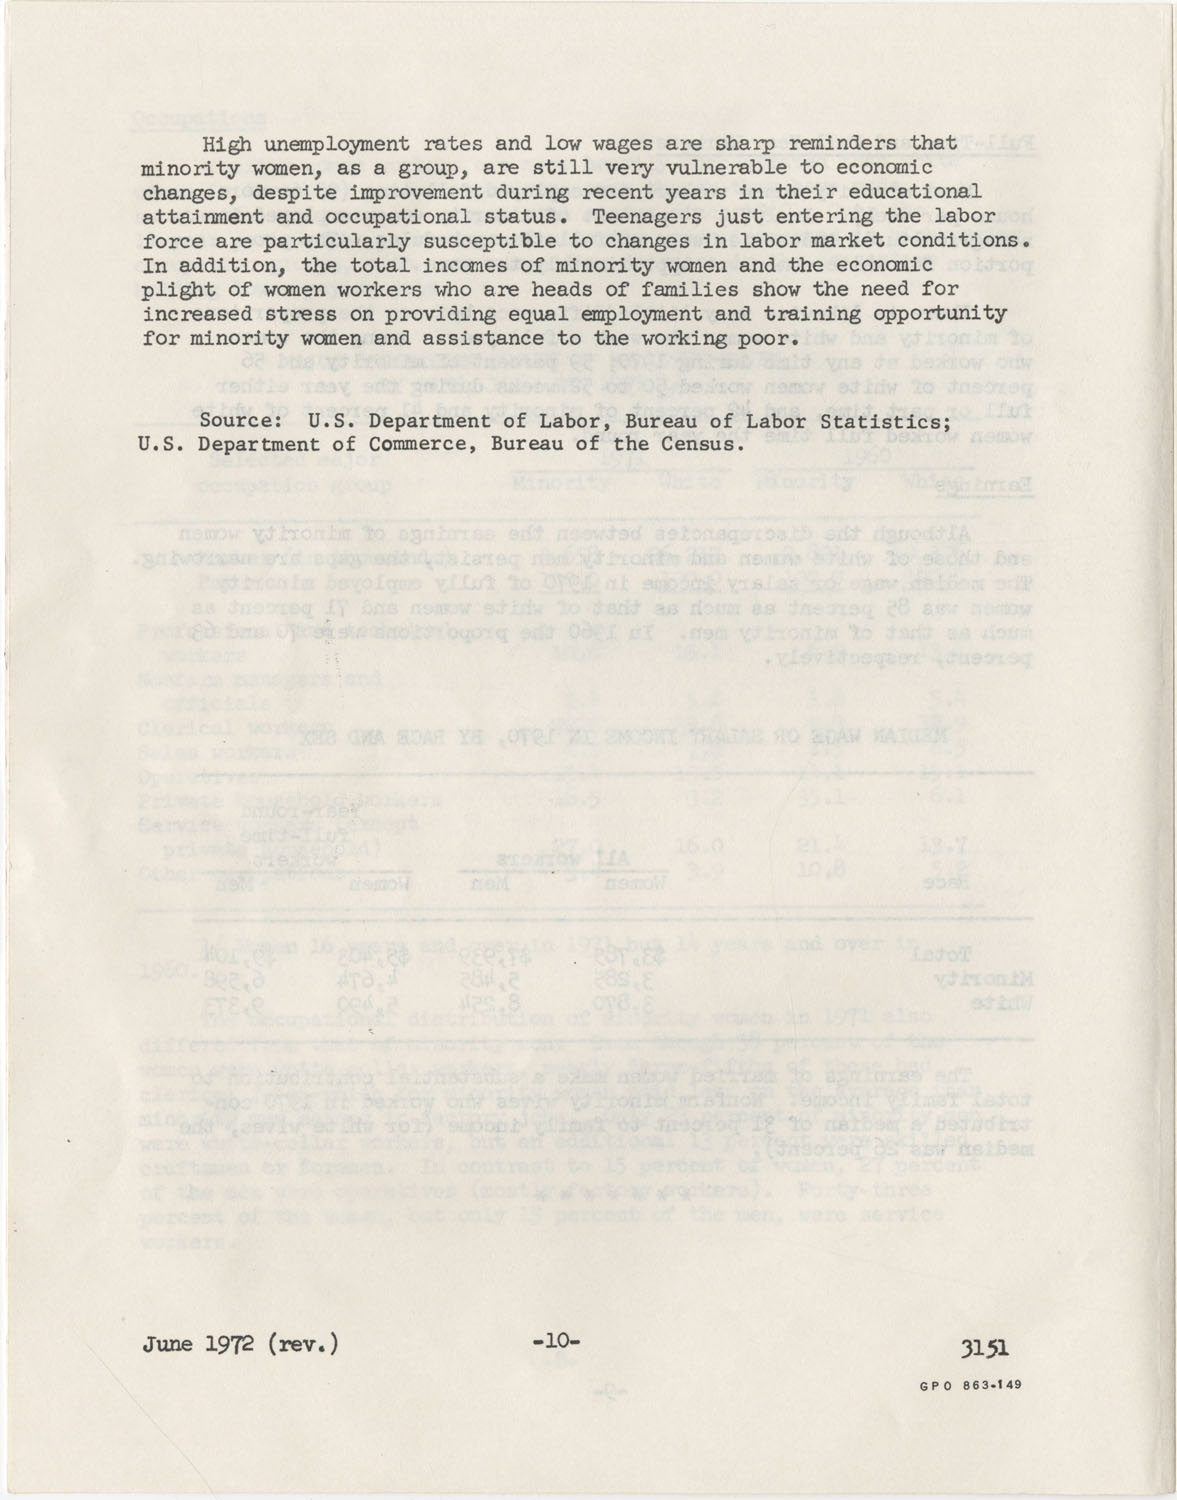 Facts on Women Workers of Minority Races, U.S. Department of Labor, June 1972, Page 10